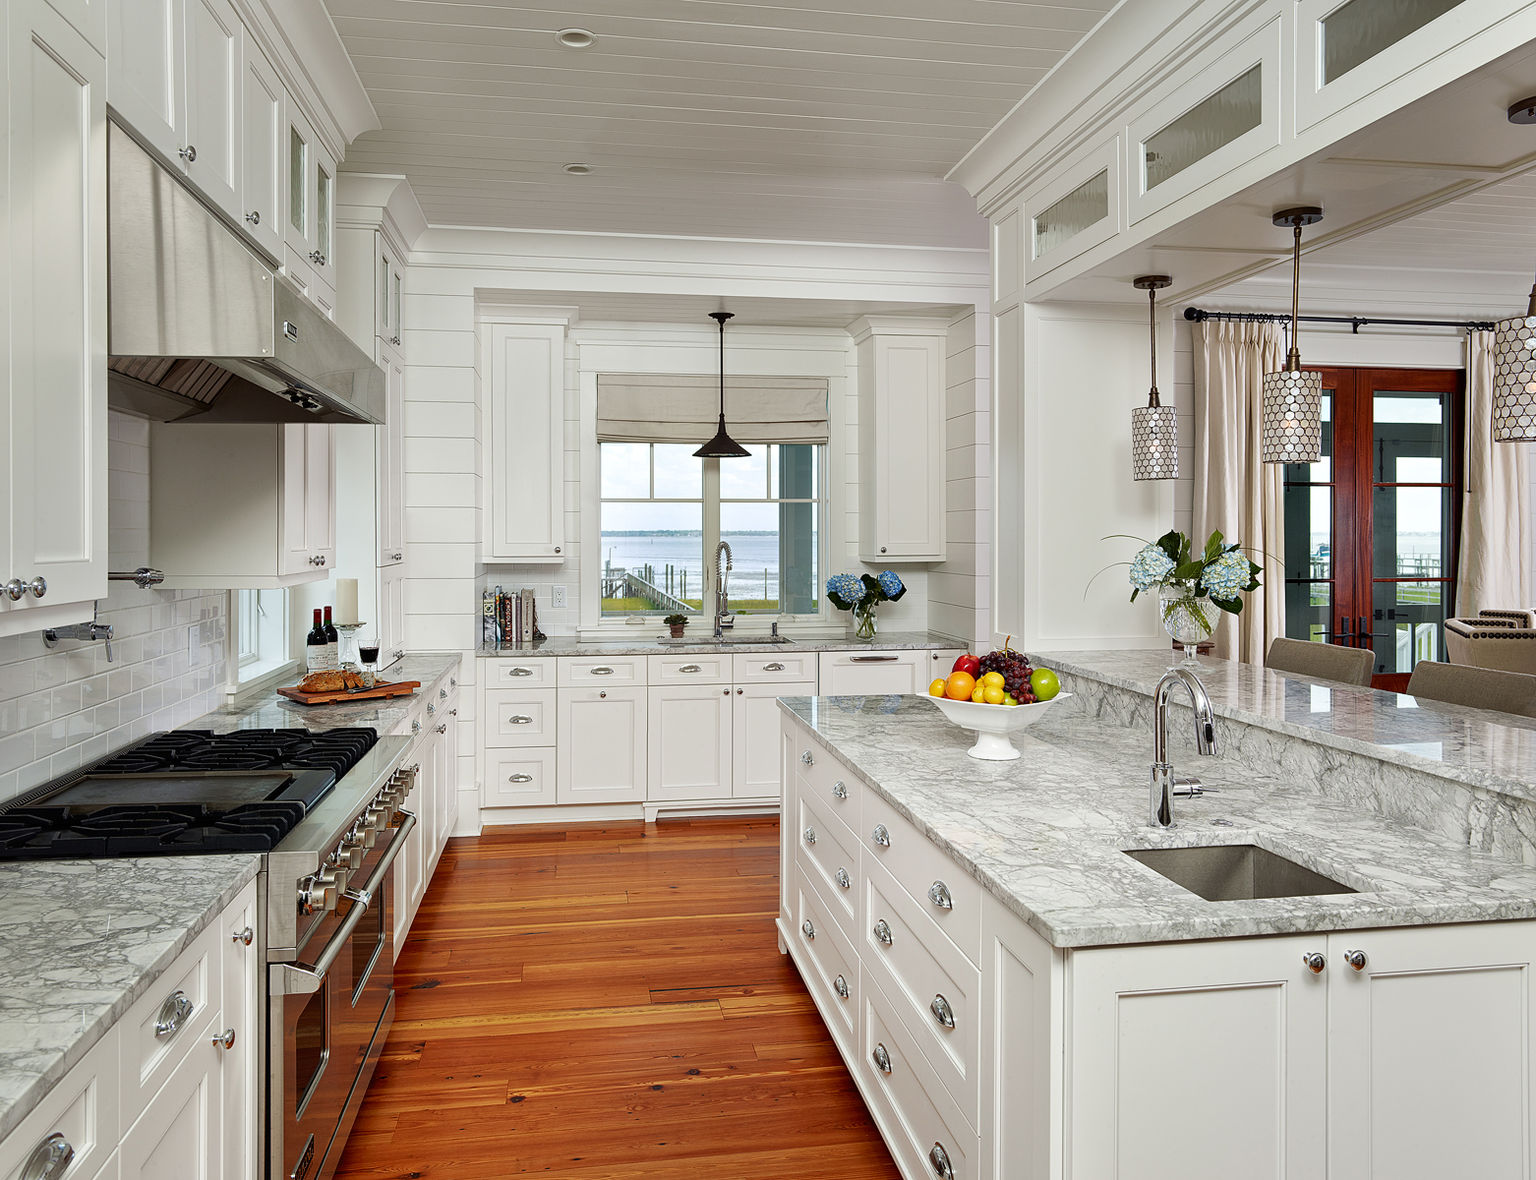 Painting Kitchen Cabinets Long Island Mt Pleasant Harborfront Cottage Herlong And Associates